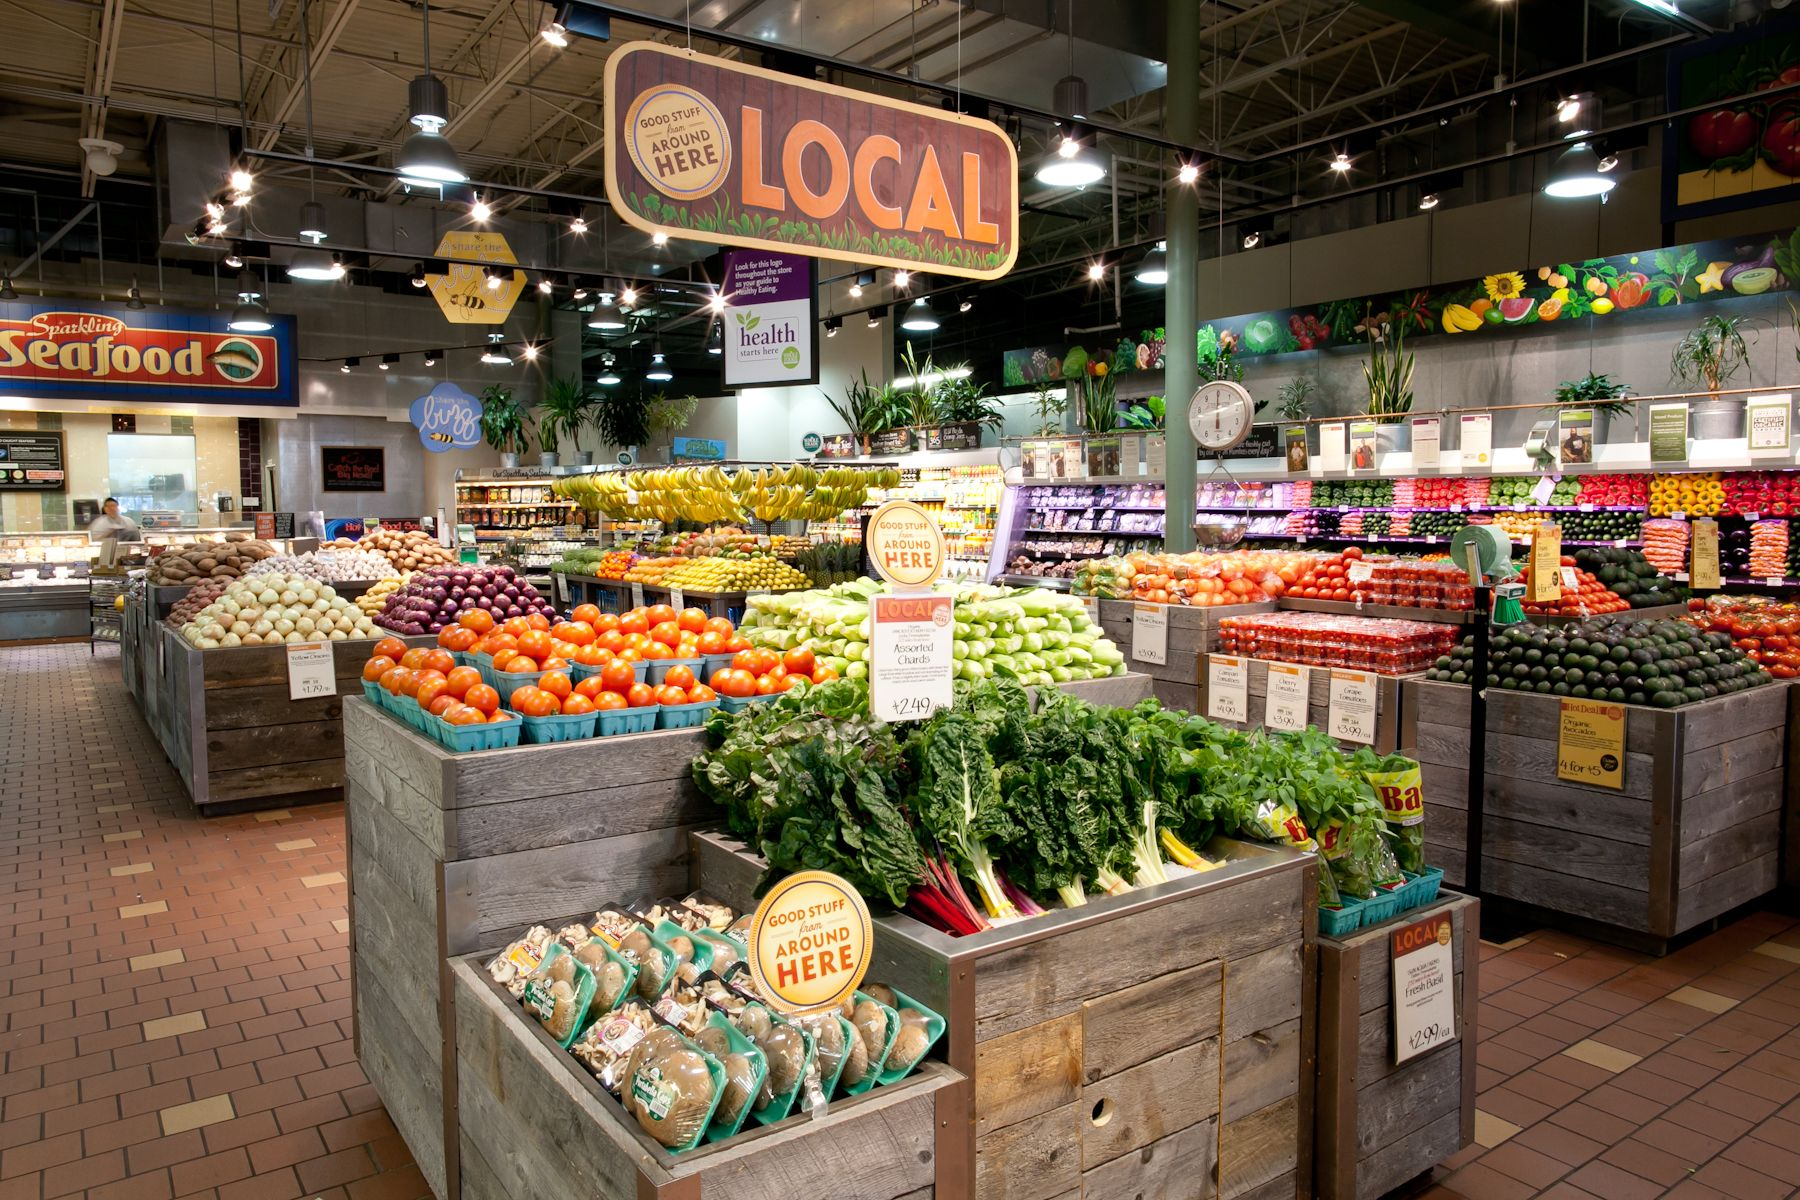 Whole Foods Market is the world's largest retailer of